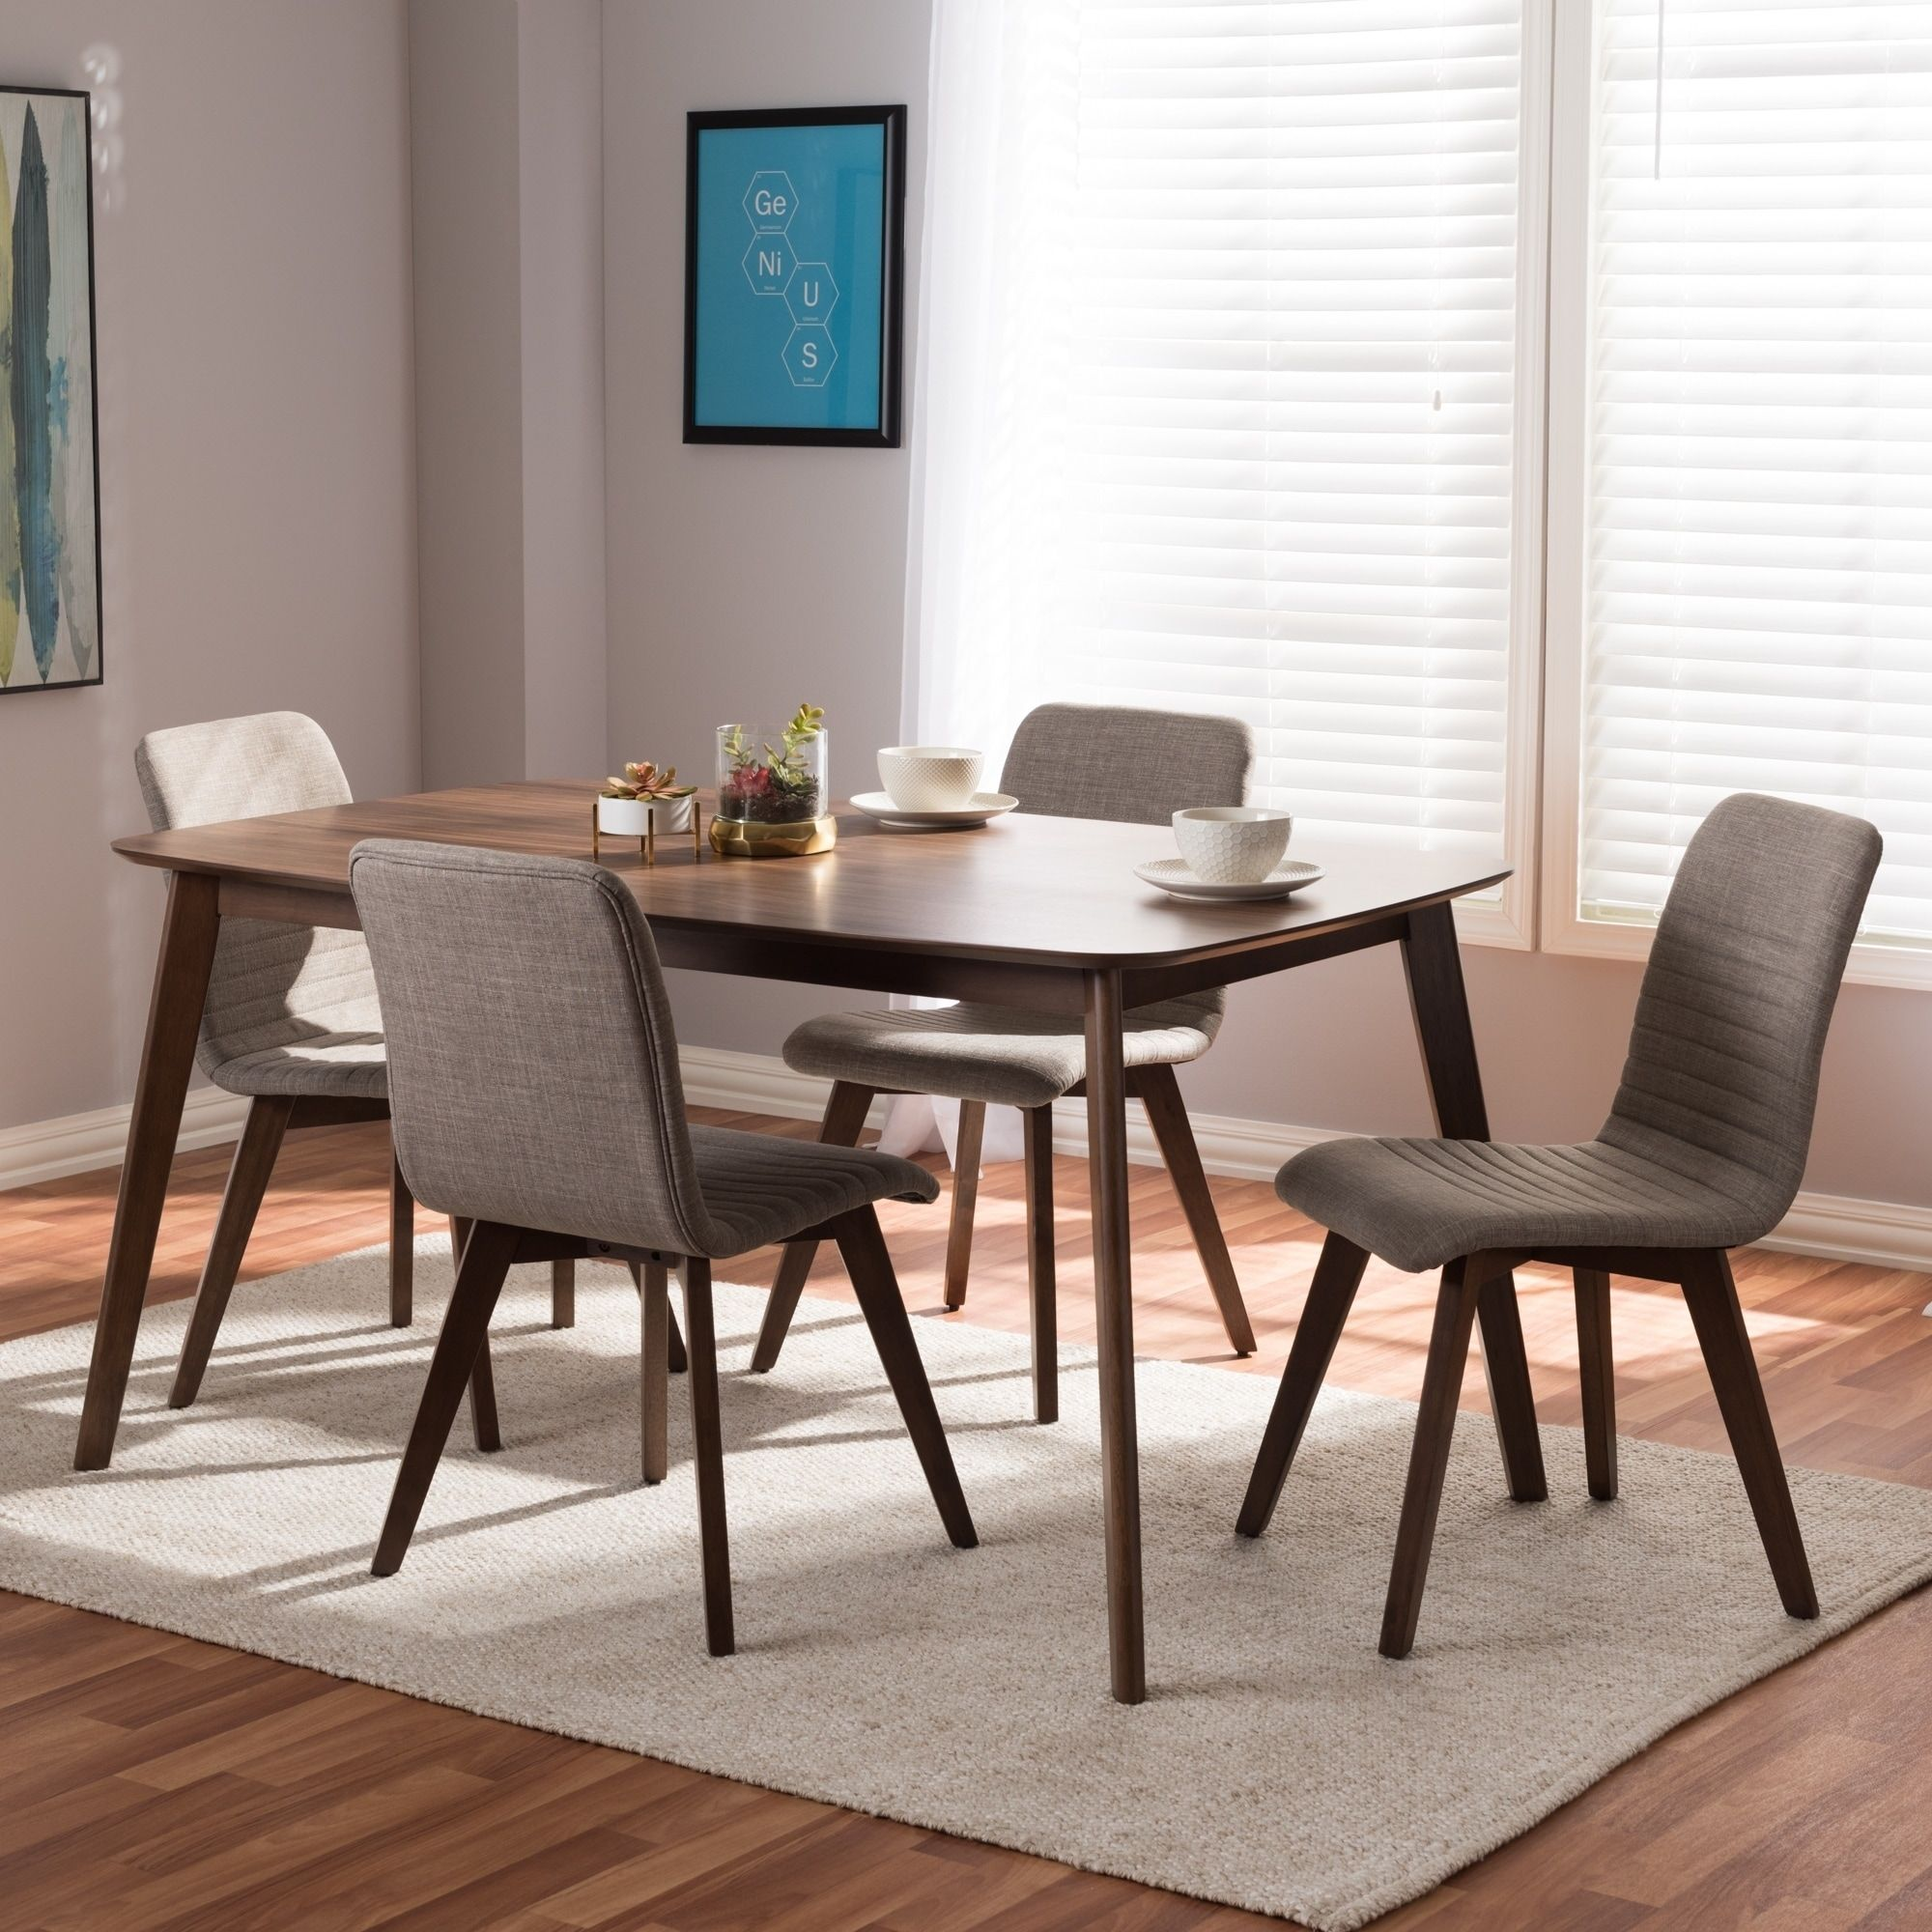 Mid Century Fabric Upholstered 5 Piece Dining Set By Baxton